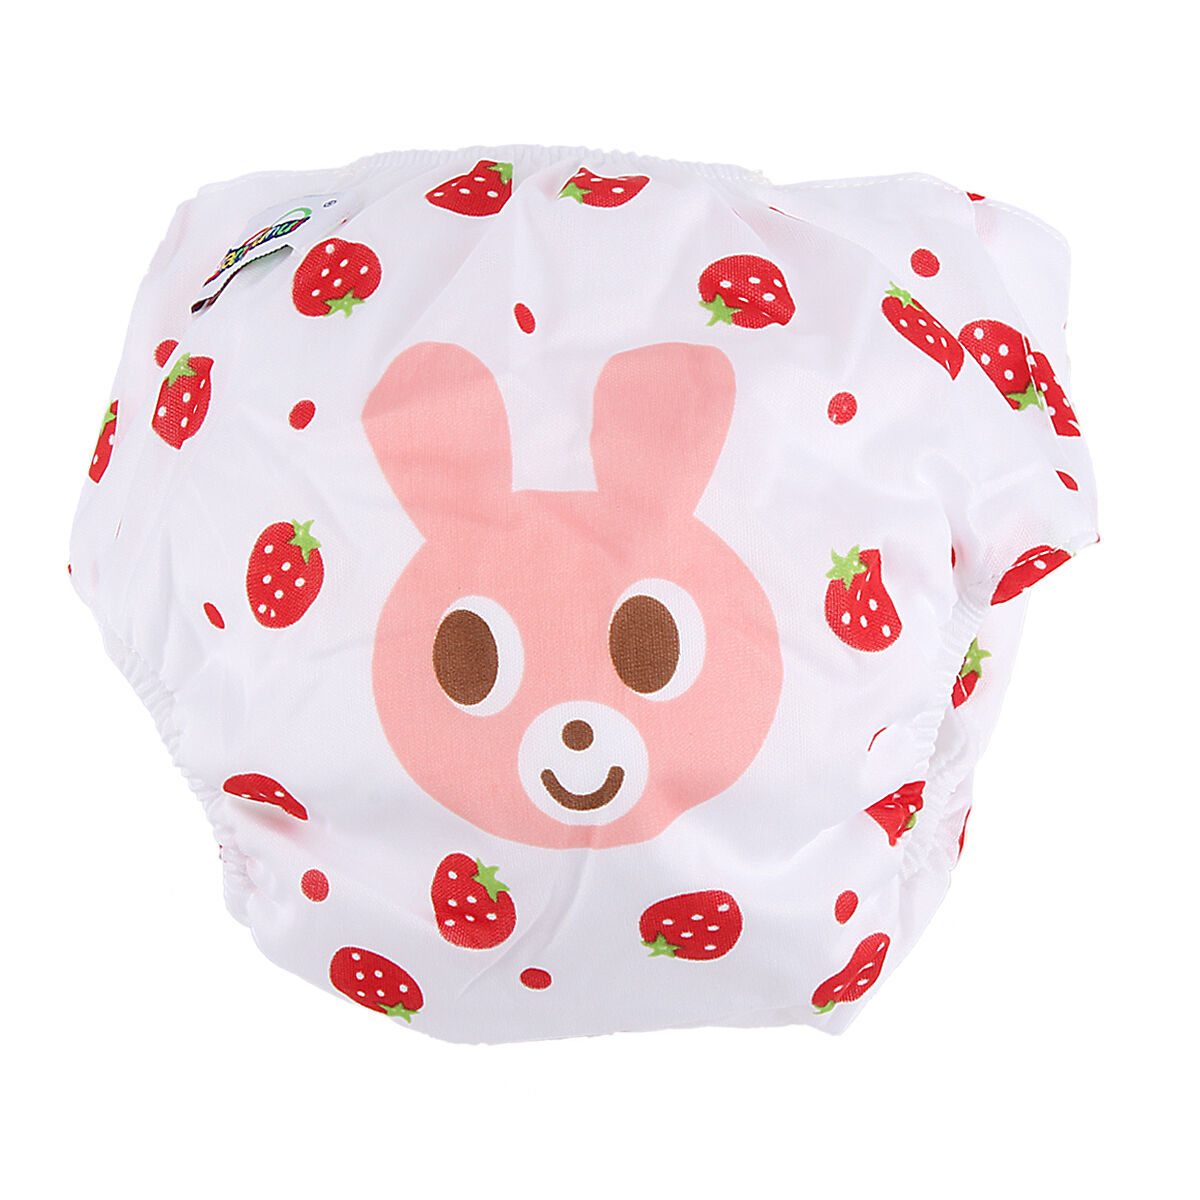 5pcs+ 5INSERT Lovely printing Adjustable Reusable Washable Cloth Diaper Nappies  Rabbit